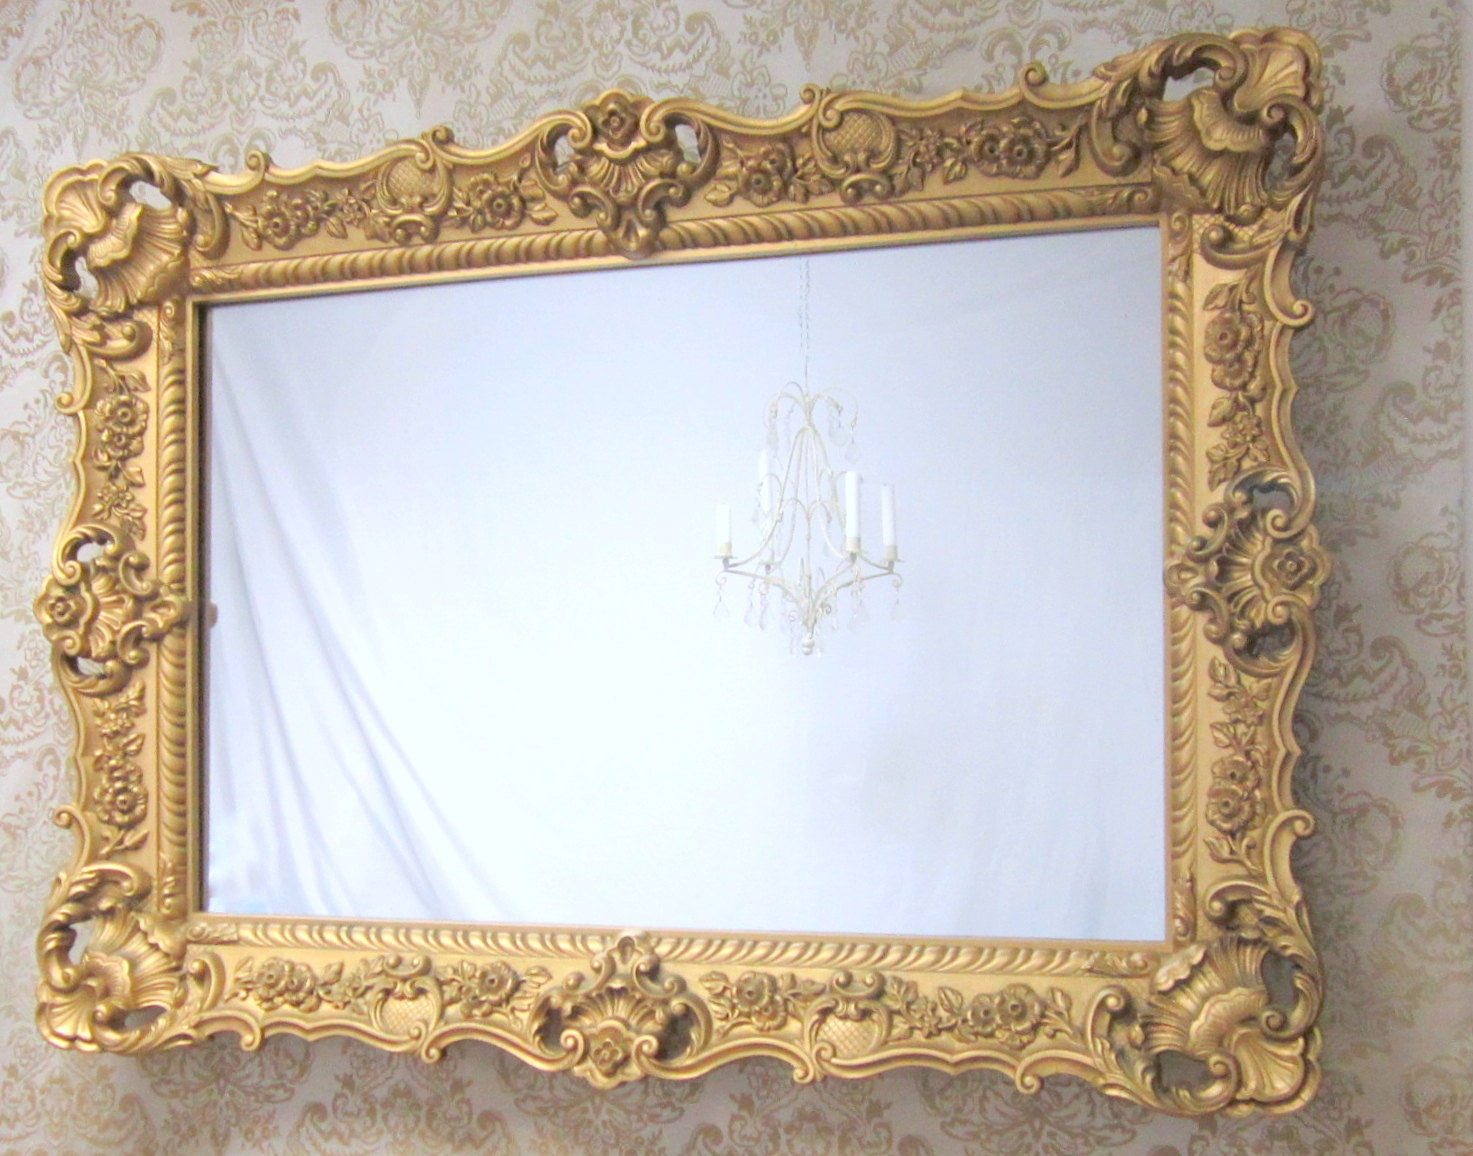 140 Best Images About Decorative Ornate Antique Vintage Mirrors In Large Ornate Mirrors For Sale (View 3 of 15)